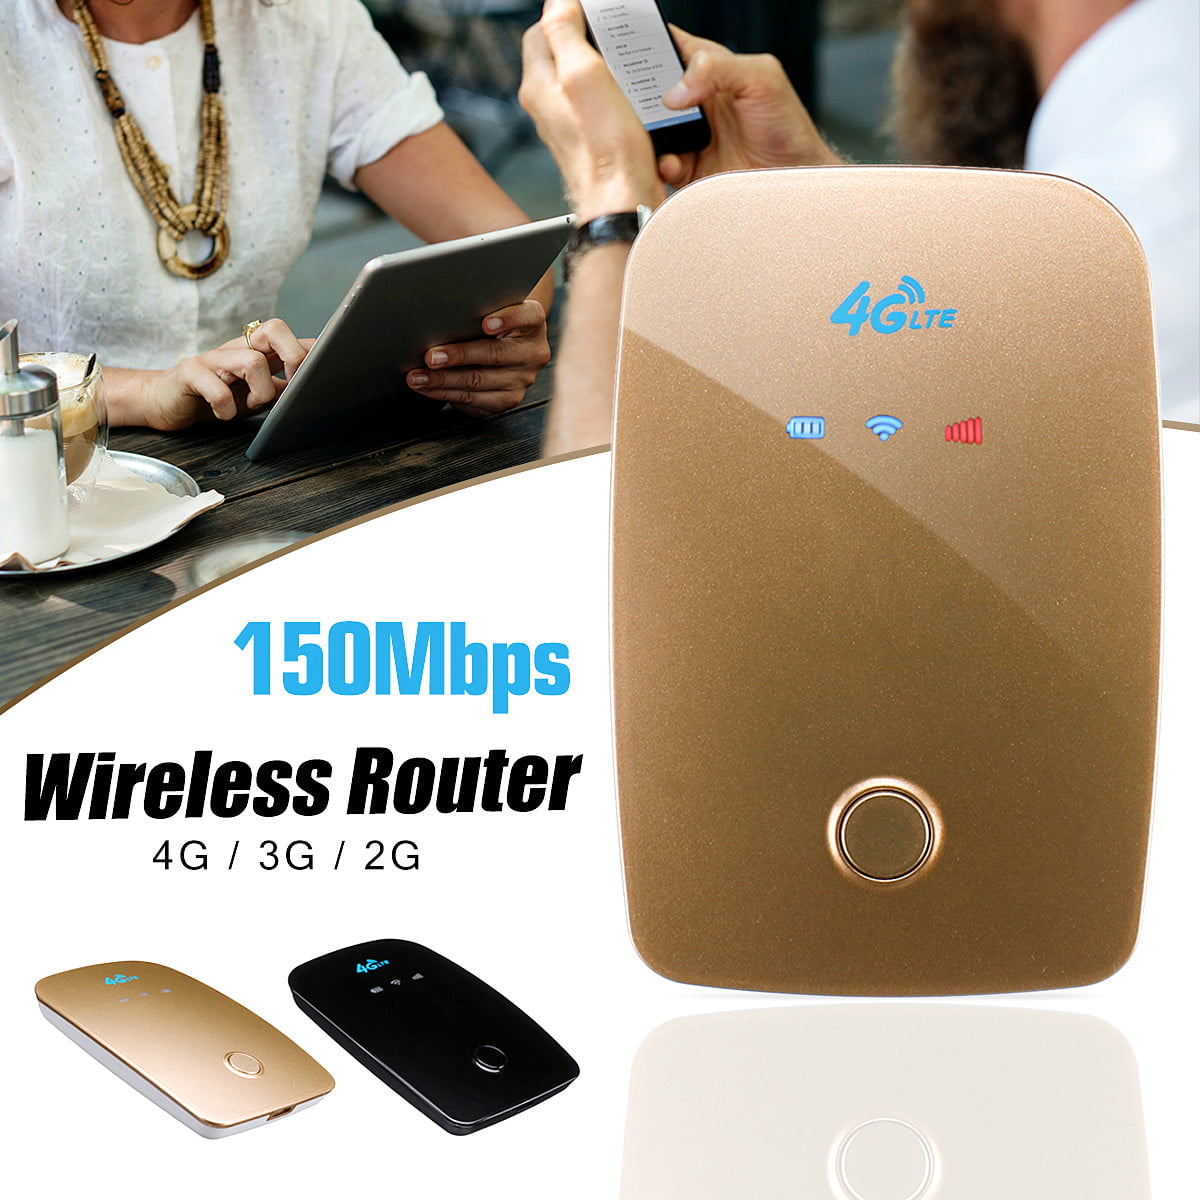 Portable 4G/3G/2G LTE Mobile WiFi Wireless Pocket Secure ...